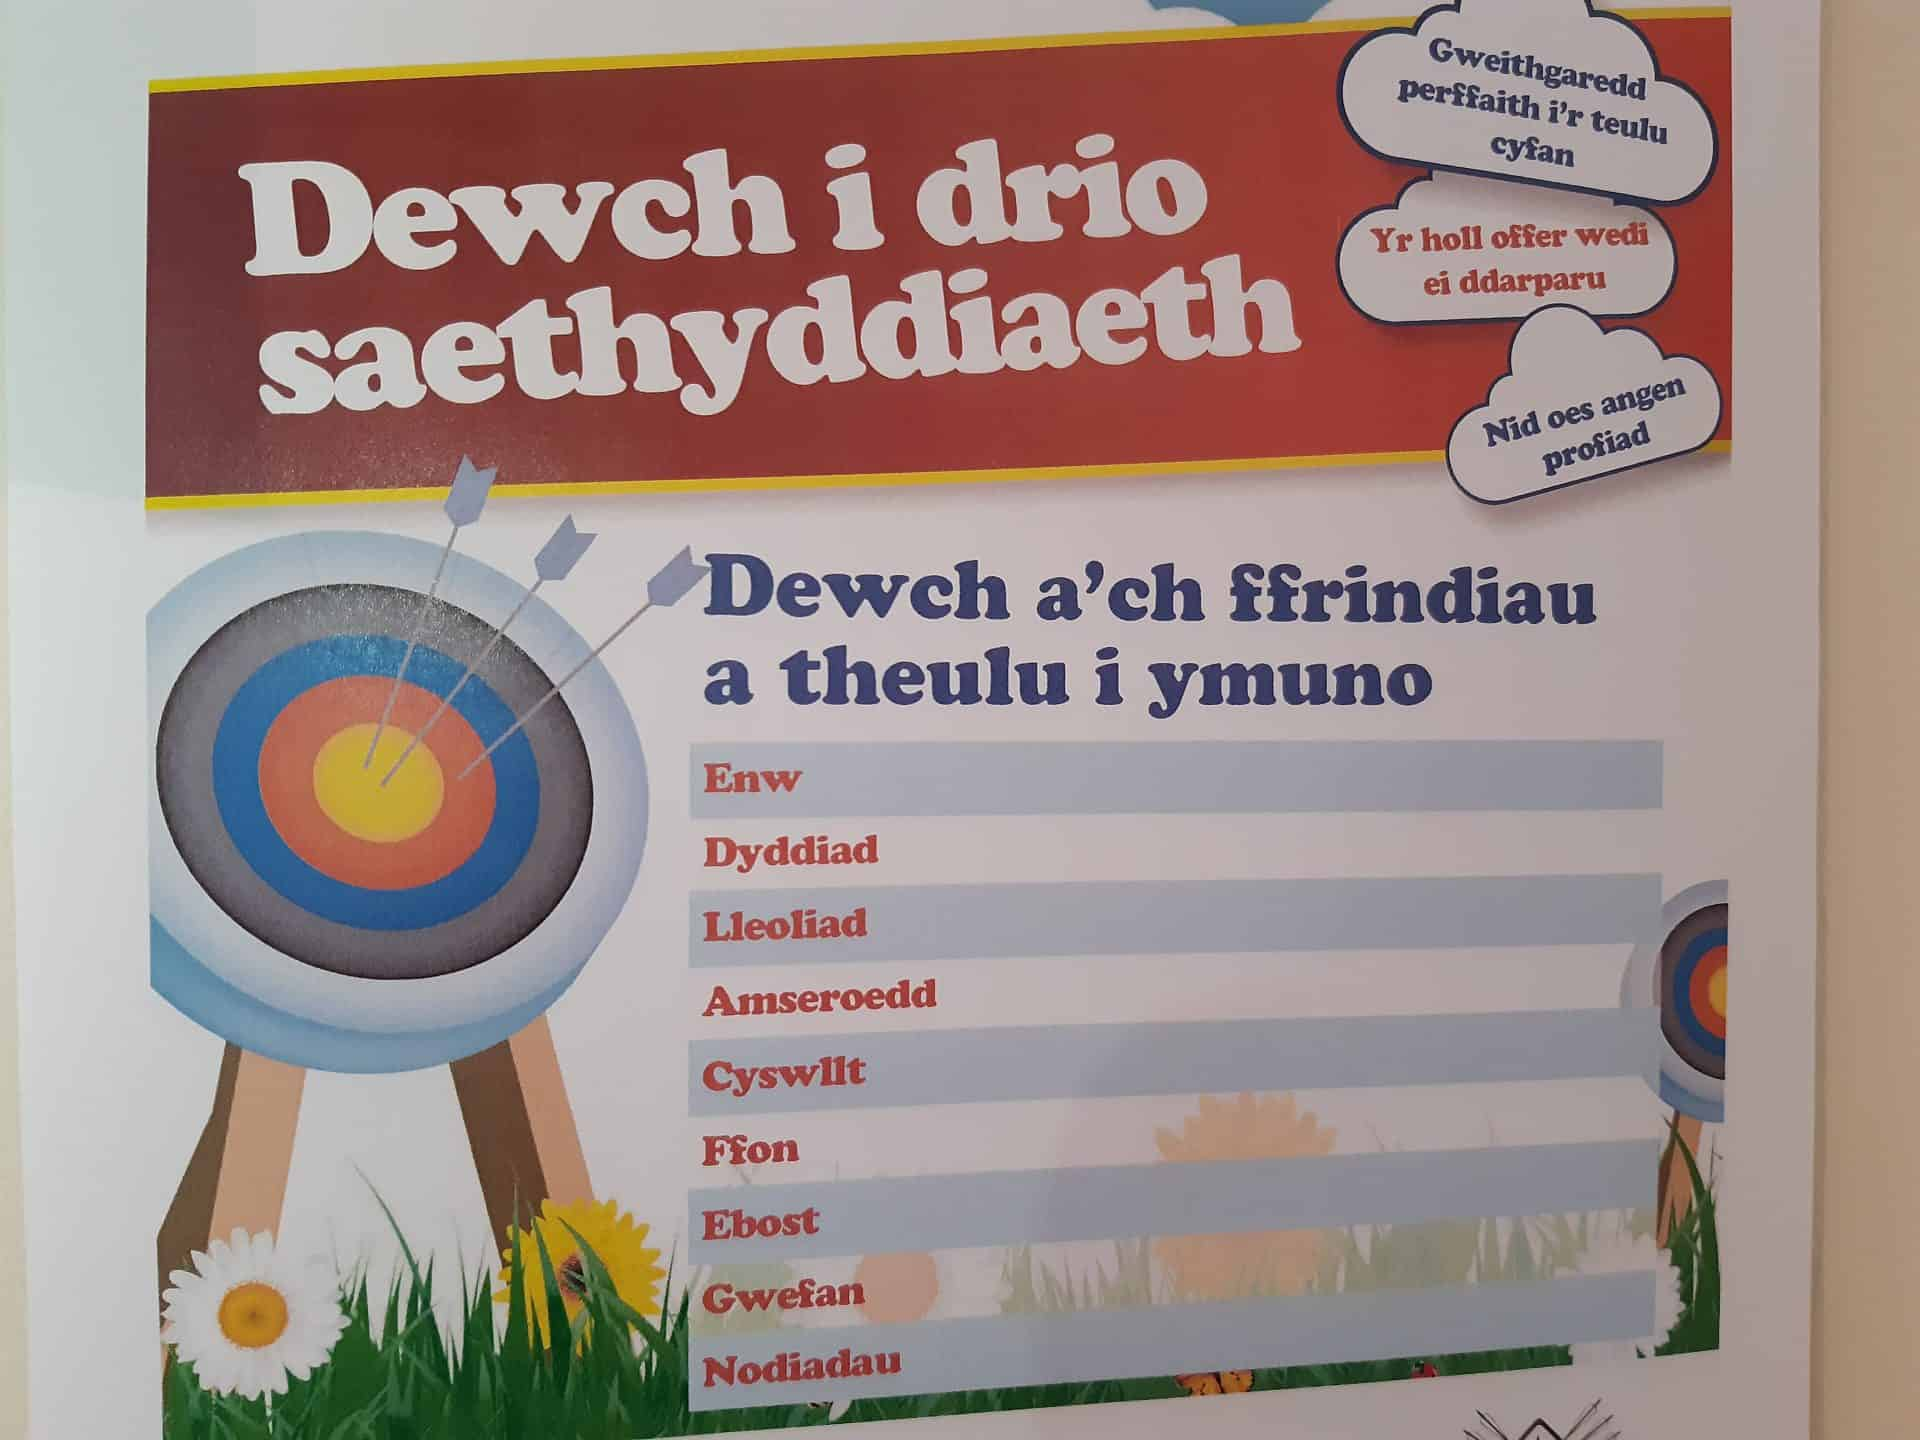 Welsh poster about archery